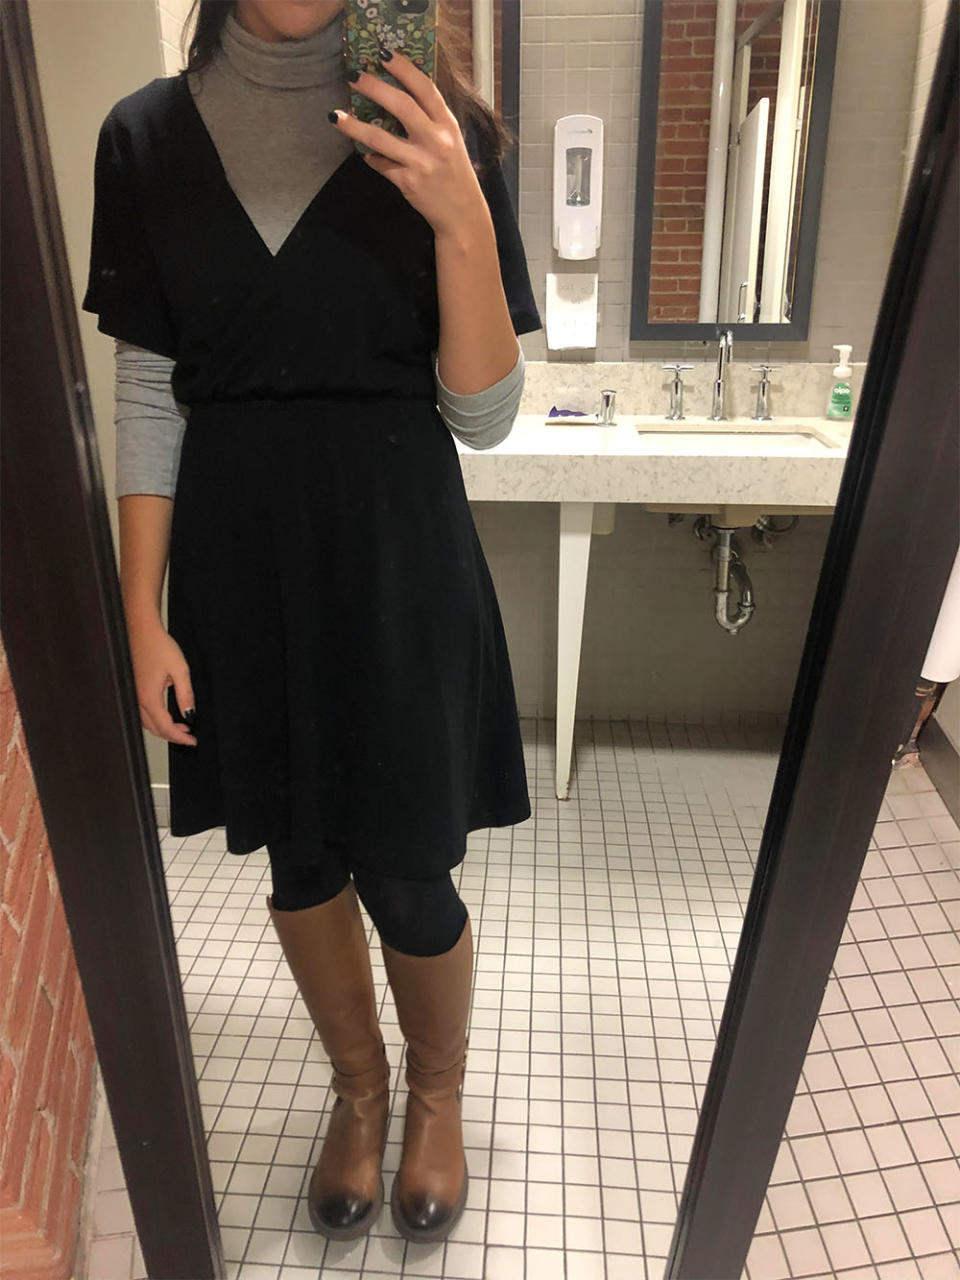 On day 5, instead of keeping warm with a cardigan or sweater, I layered a lightweight turtleneck underneath the dress.